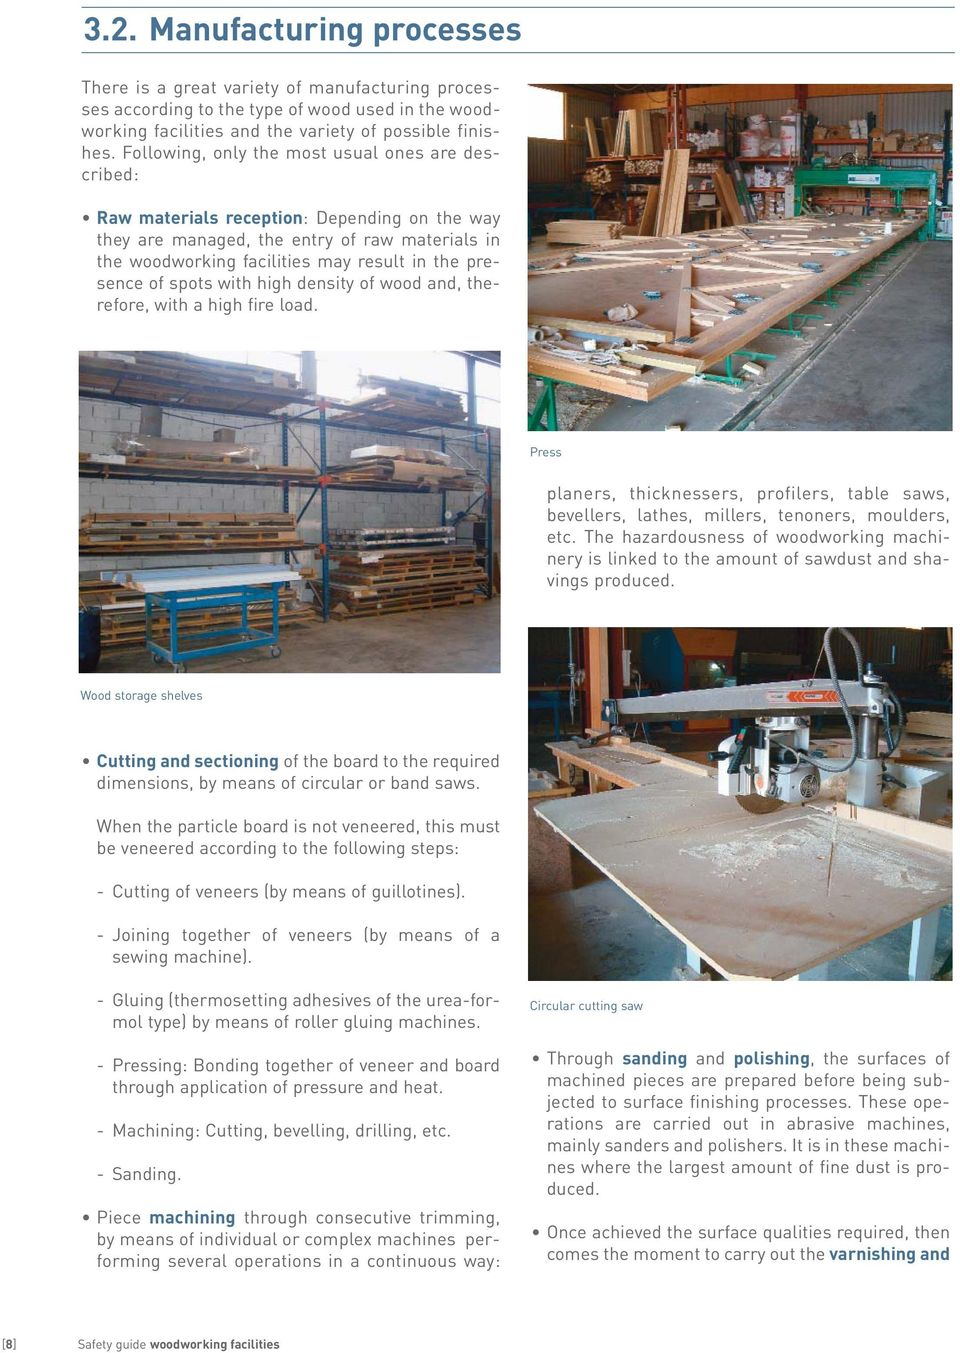 of spots with high density of wood and, therefore, with a high fire load. Press planers, thicknessers, profilers, table saws, bevellers, lathes, millers, tenoners, moulders, etc.